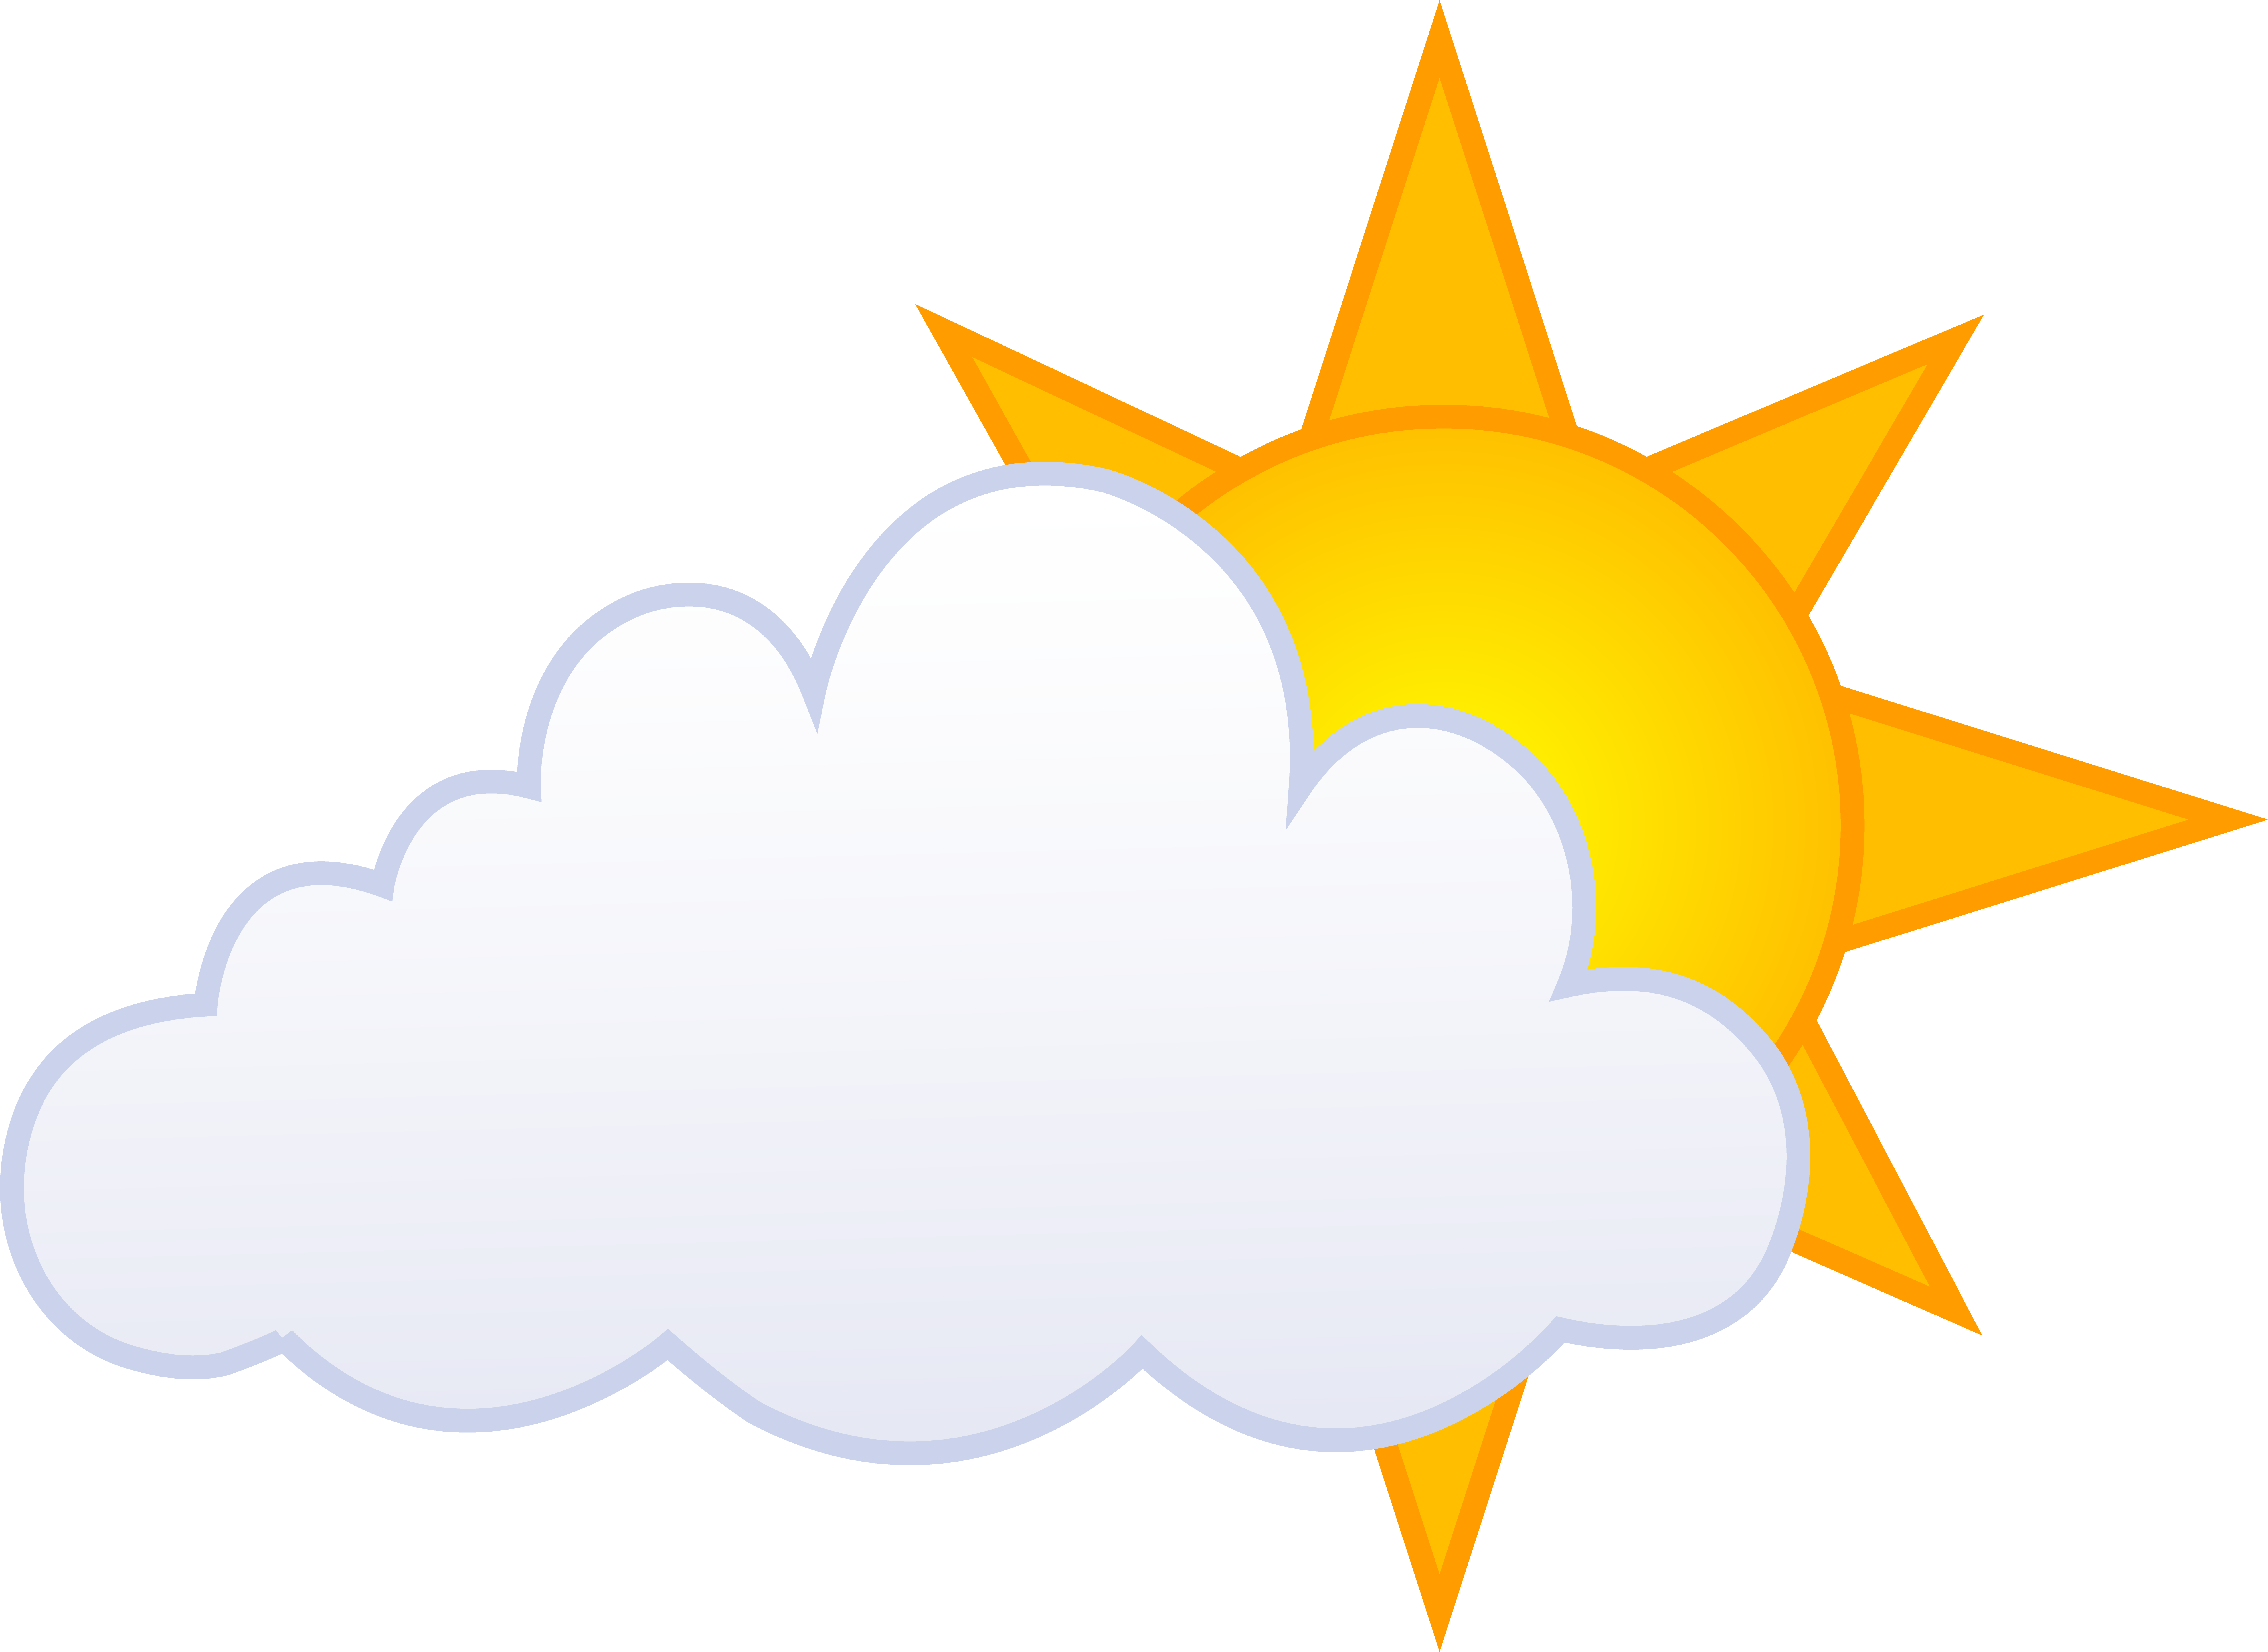 Clouds clipart partly cloudy #10.